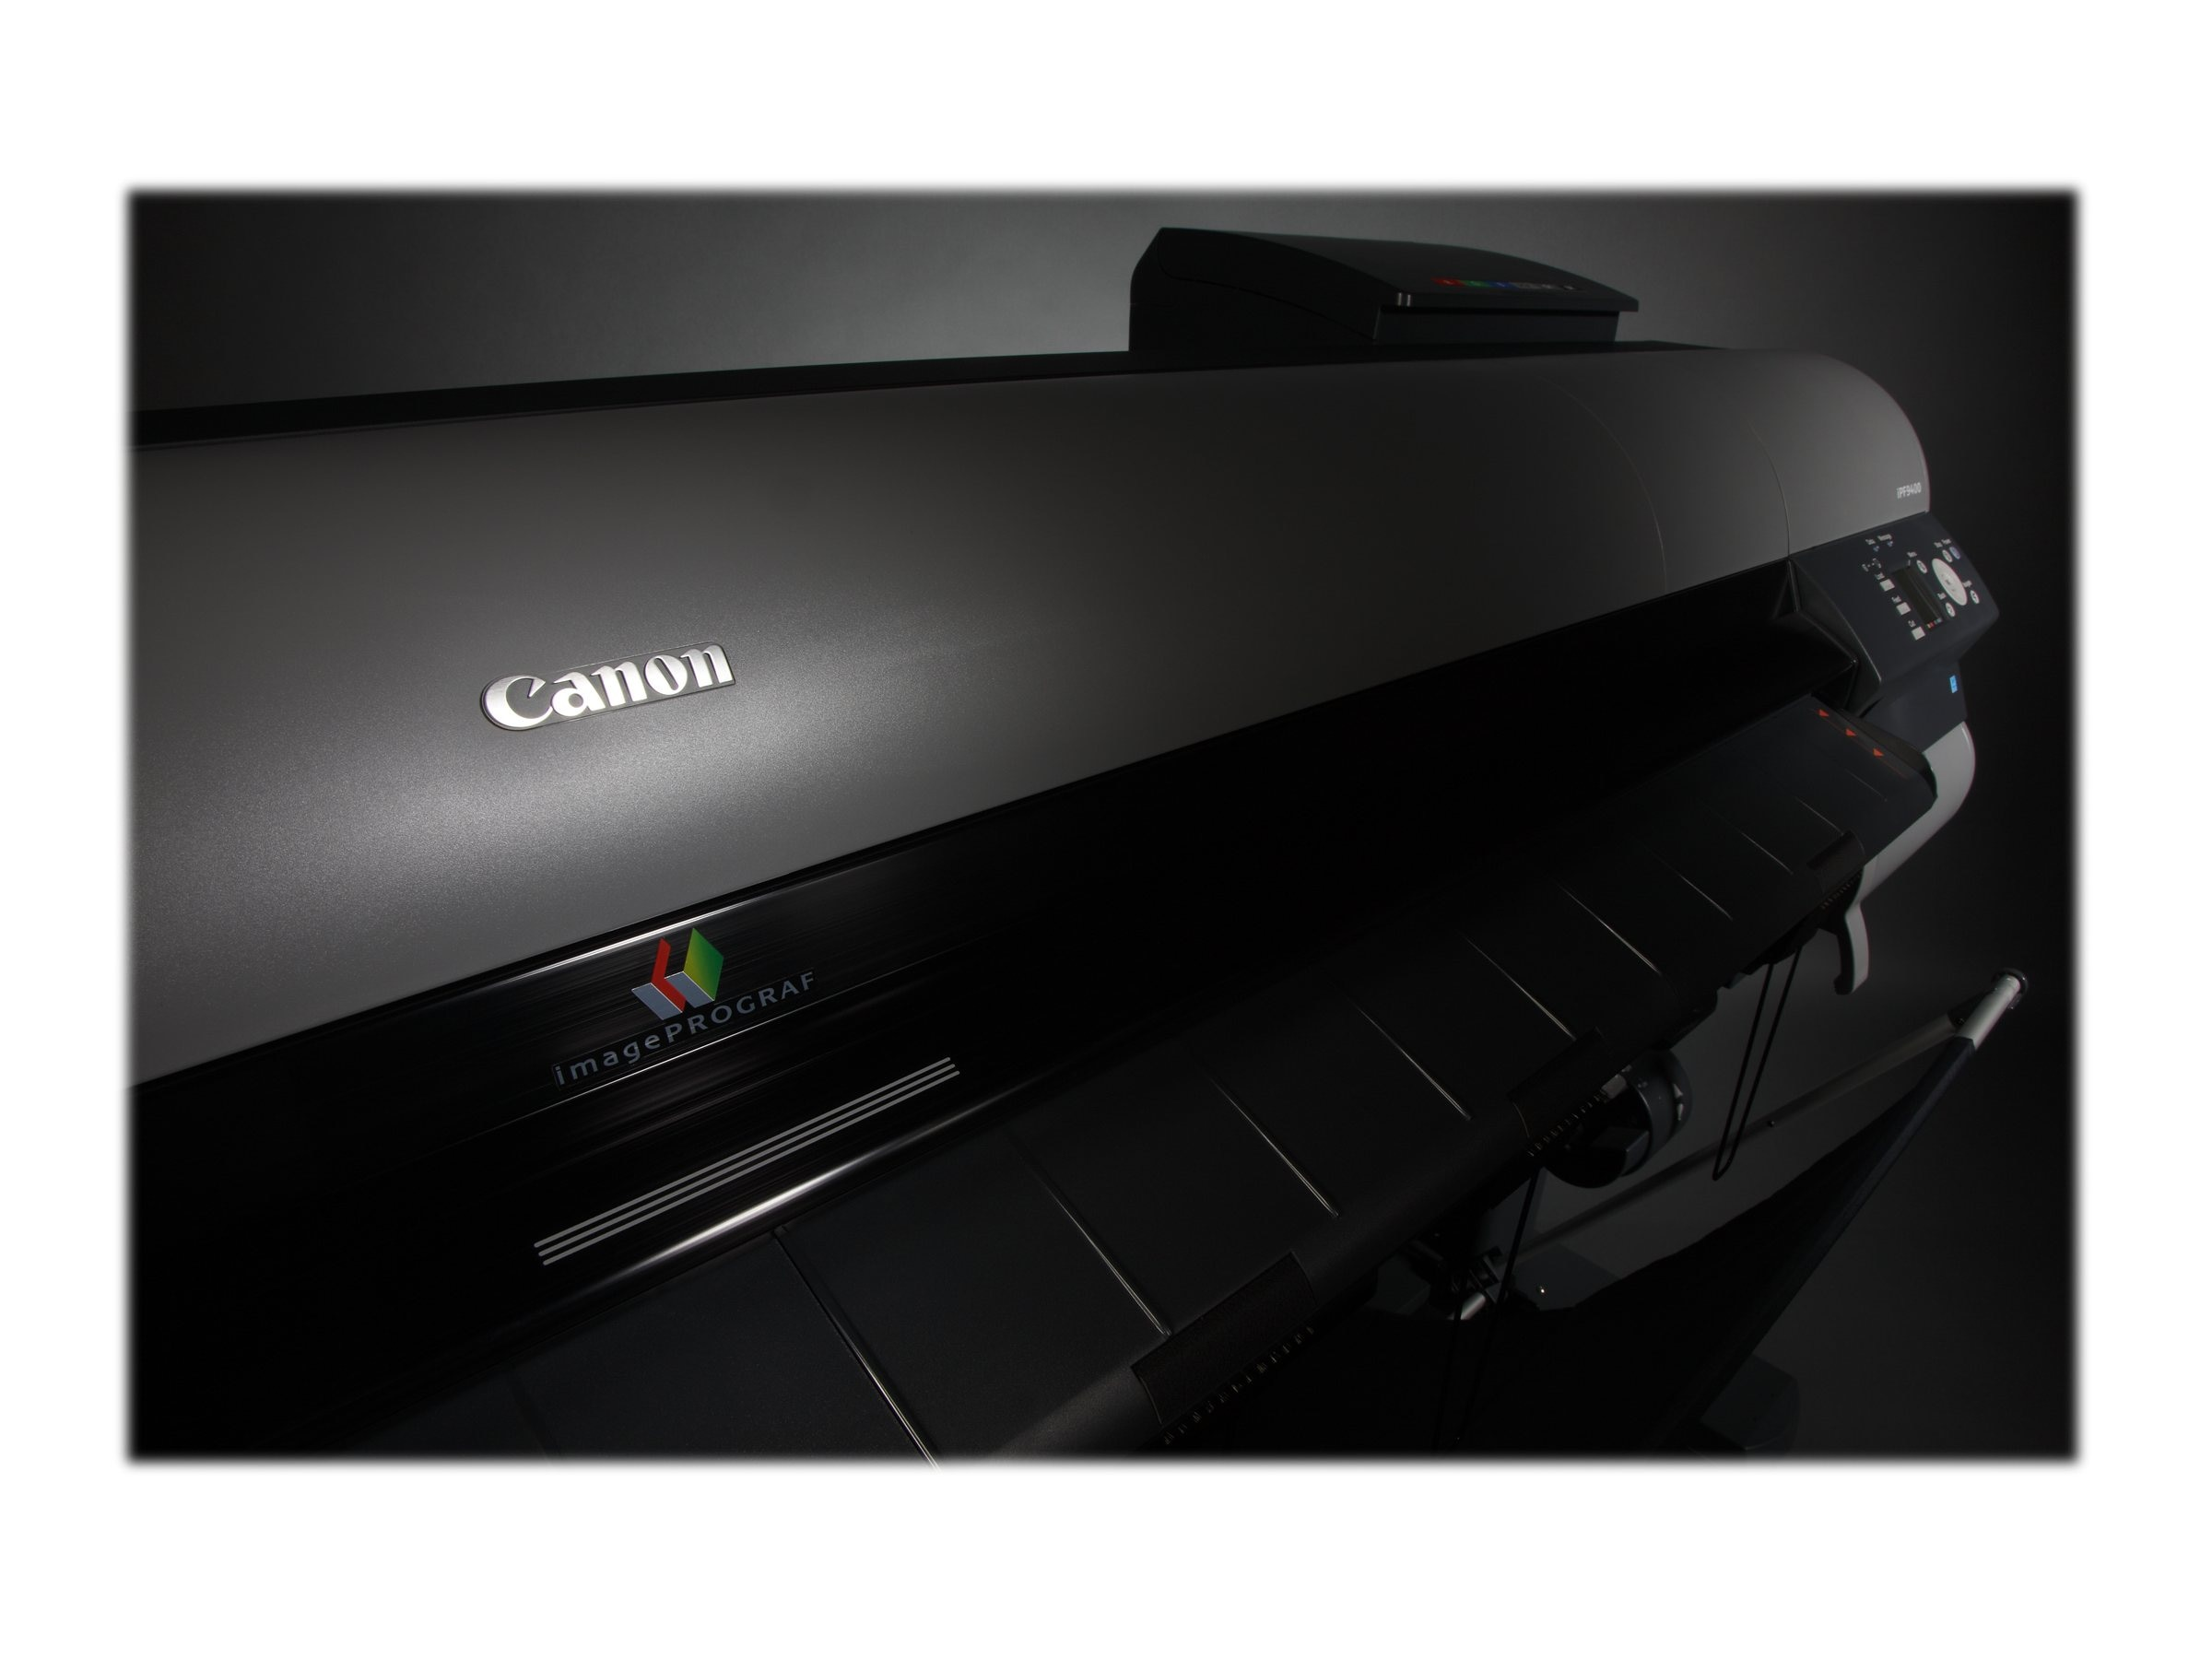 Canon imagePROGRAF iPF9400 Graphic Arts & Photo Printer, 6560B002